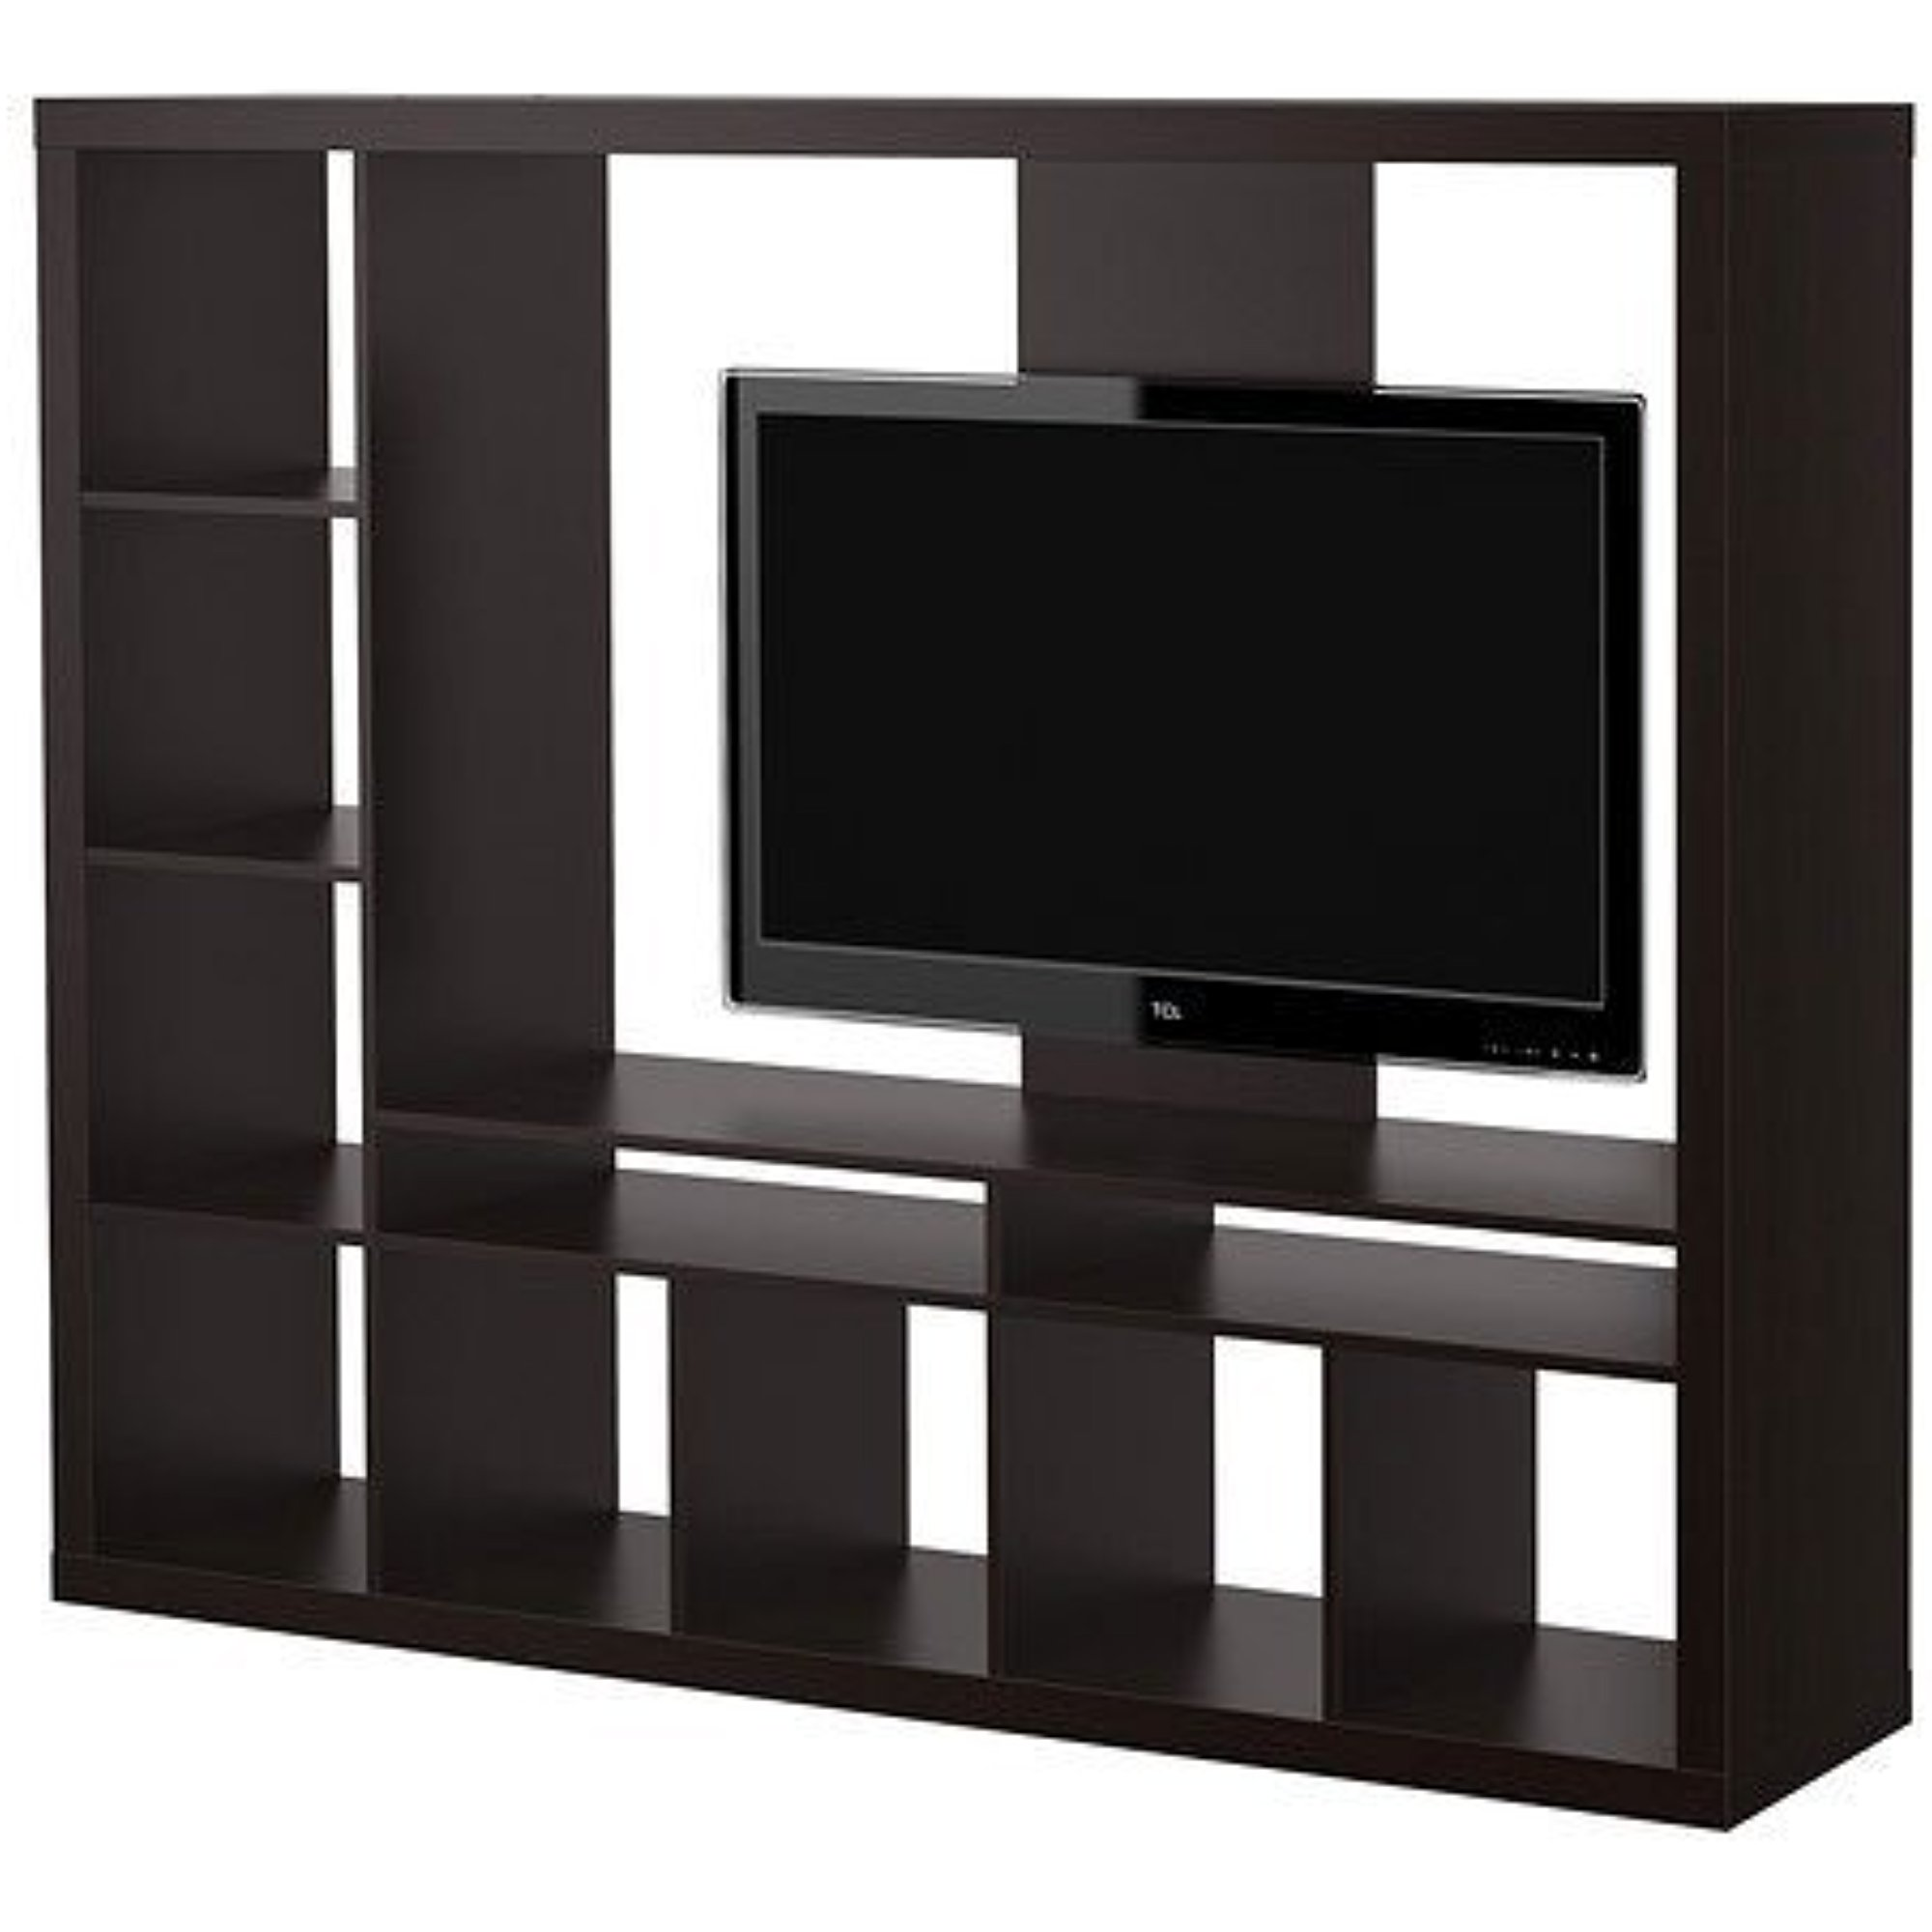 "Ikea Expedit Entertainment Center Tv Stand up to 55"" Flat Screen"